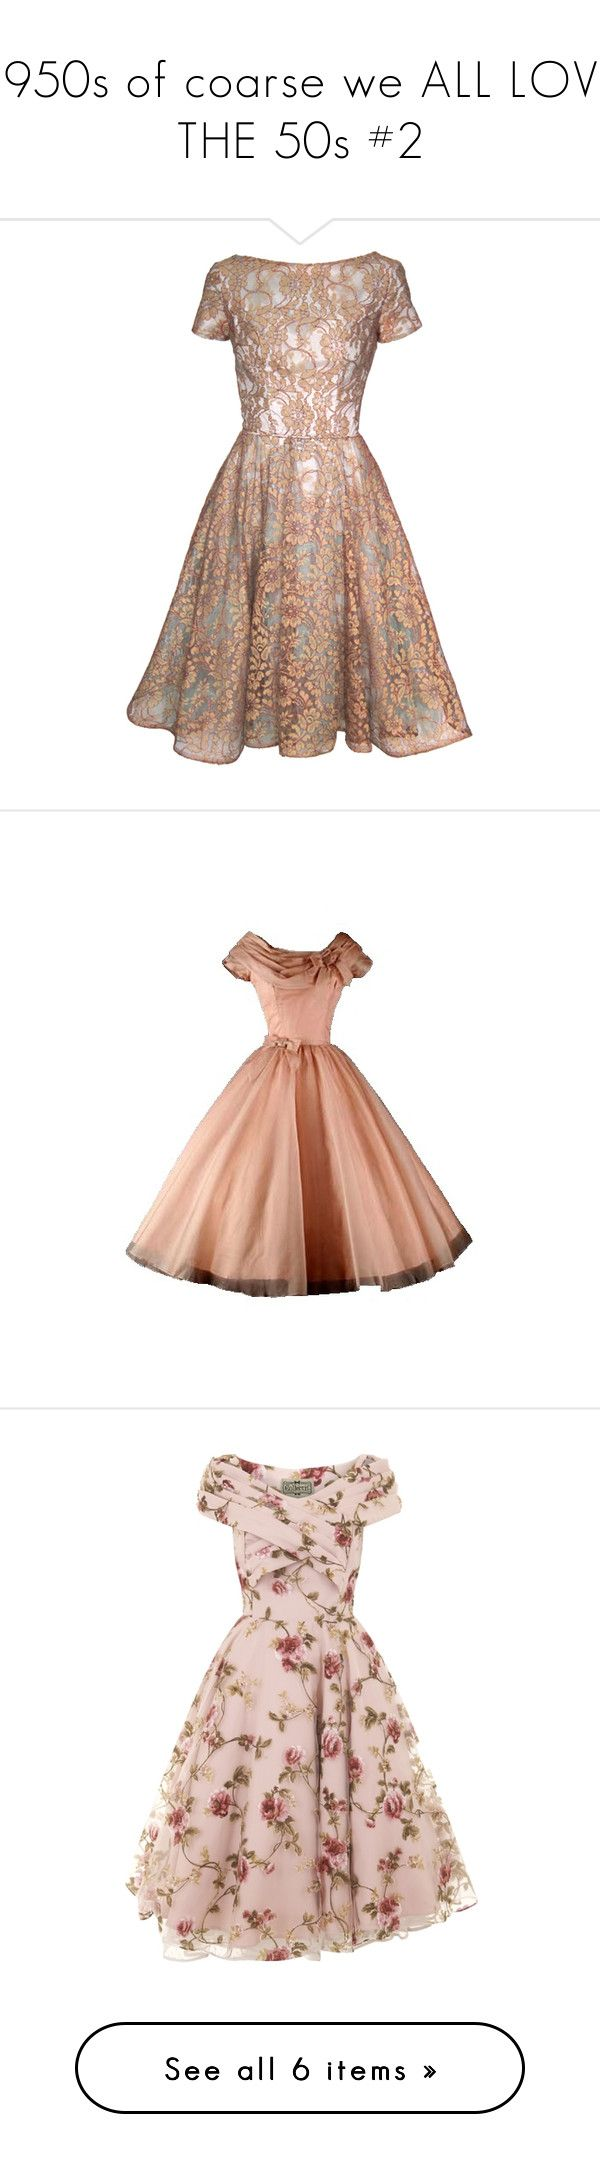 """""""1950s of coarse we ALL LOVE THE 50s #2"""" by dawn-lindenberg ❤ liked on Polyvore featuring dresses, vestidos, short dresses, gowns, blue dress, brown dress, lace cocktail dress, vintage lace dress, short blue dresses and short dress"""